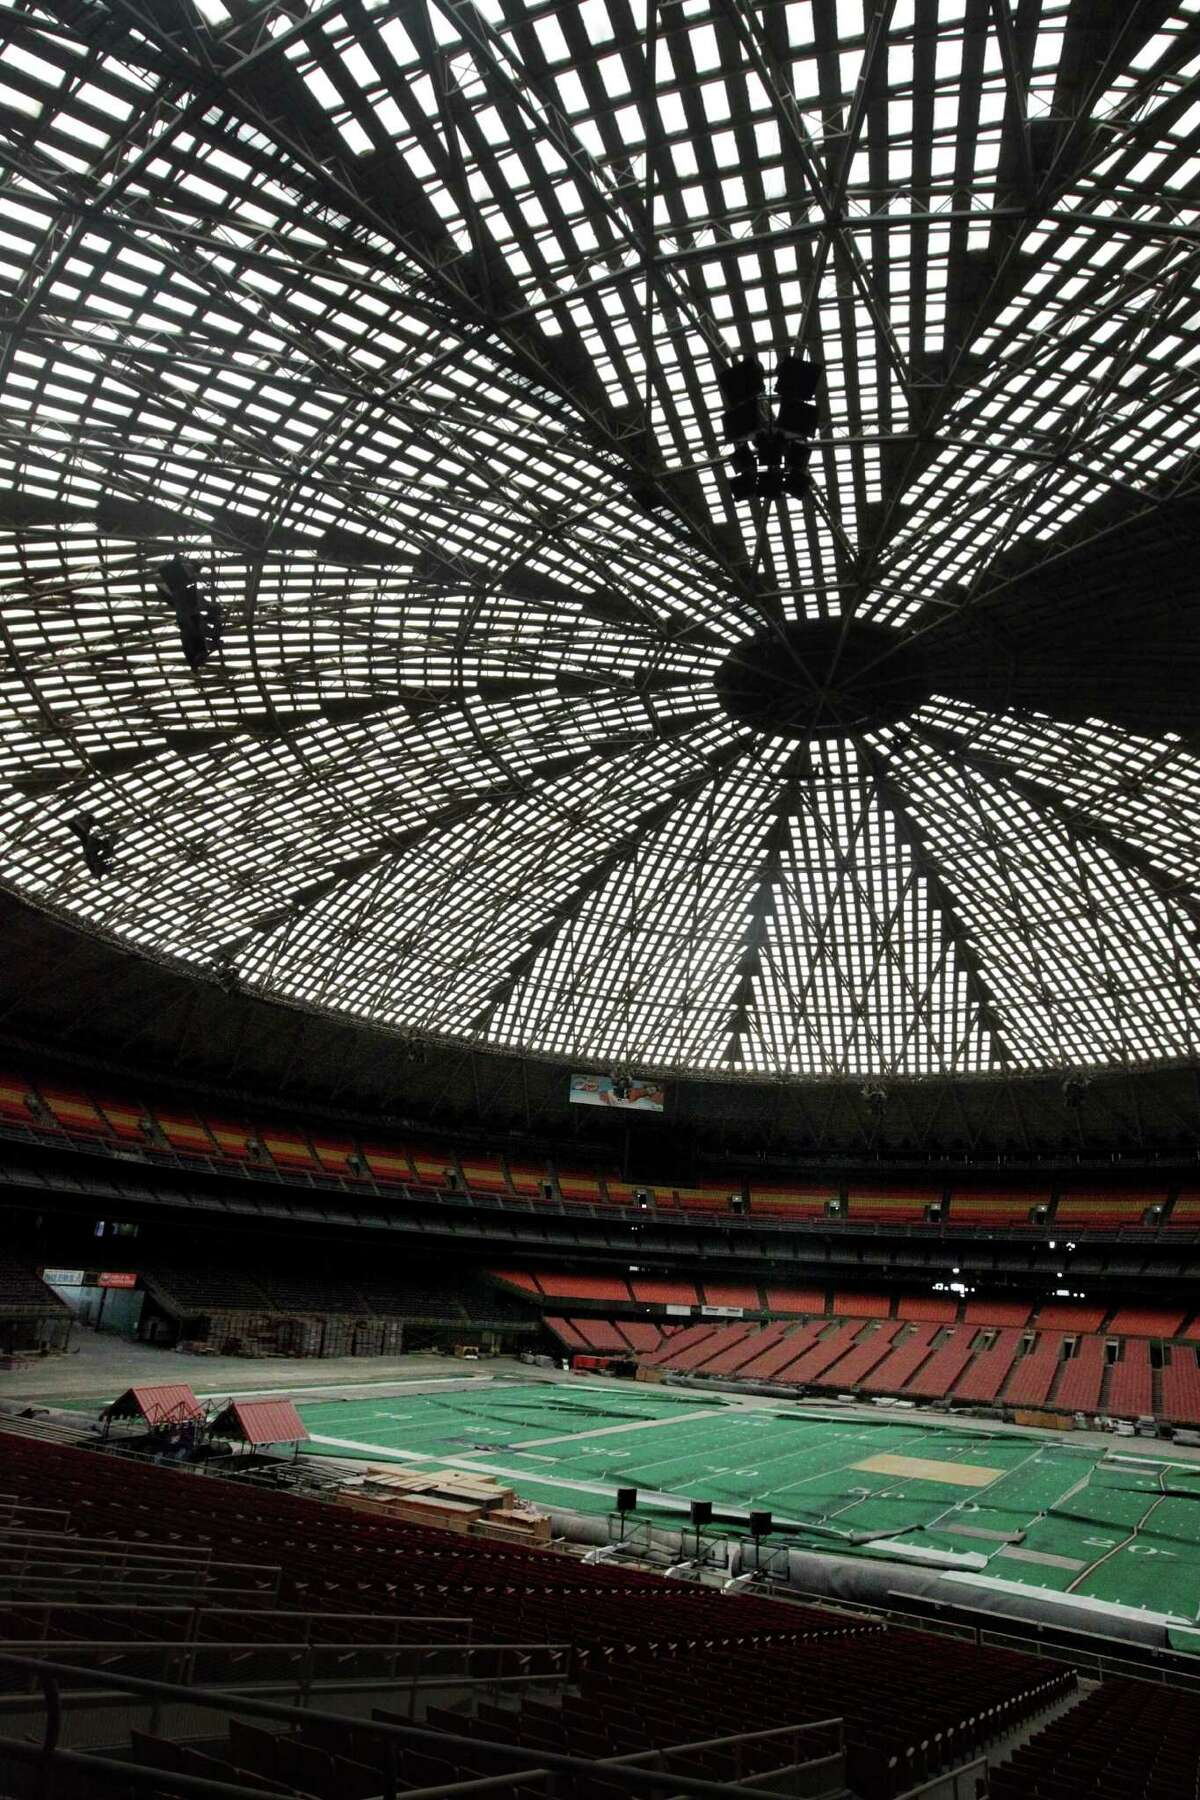 The Harris County Sports and Convention Corp., continues to study how to best re-purpose the Astrodome.